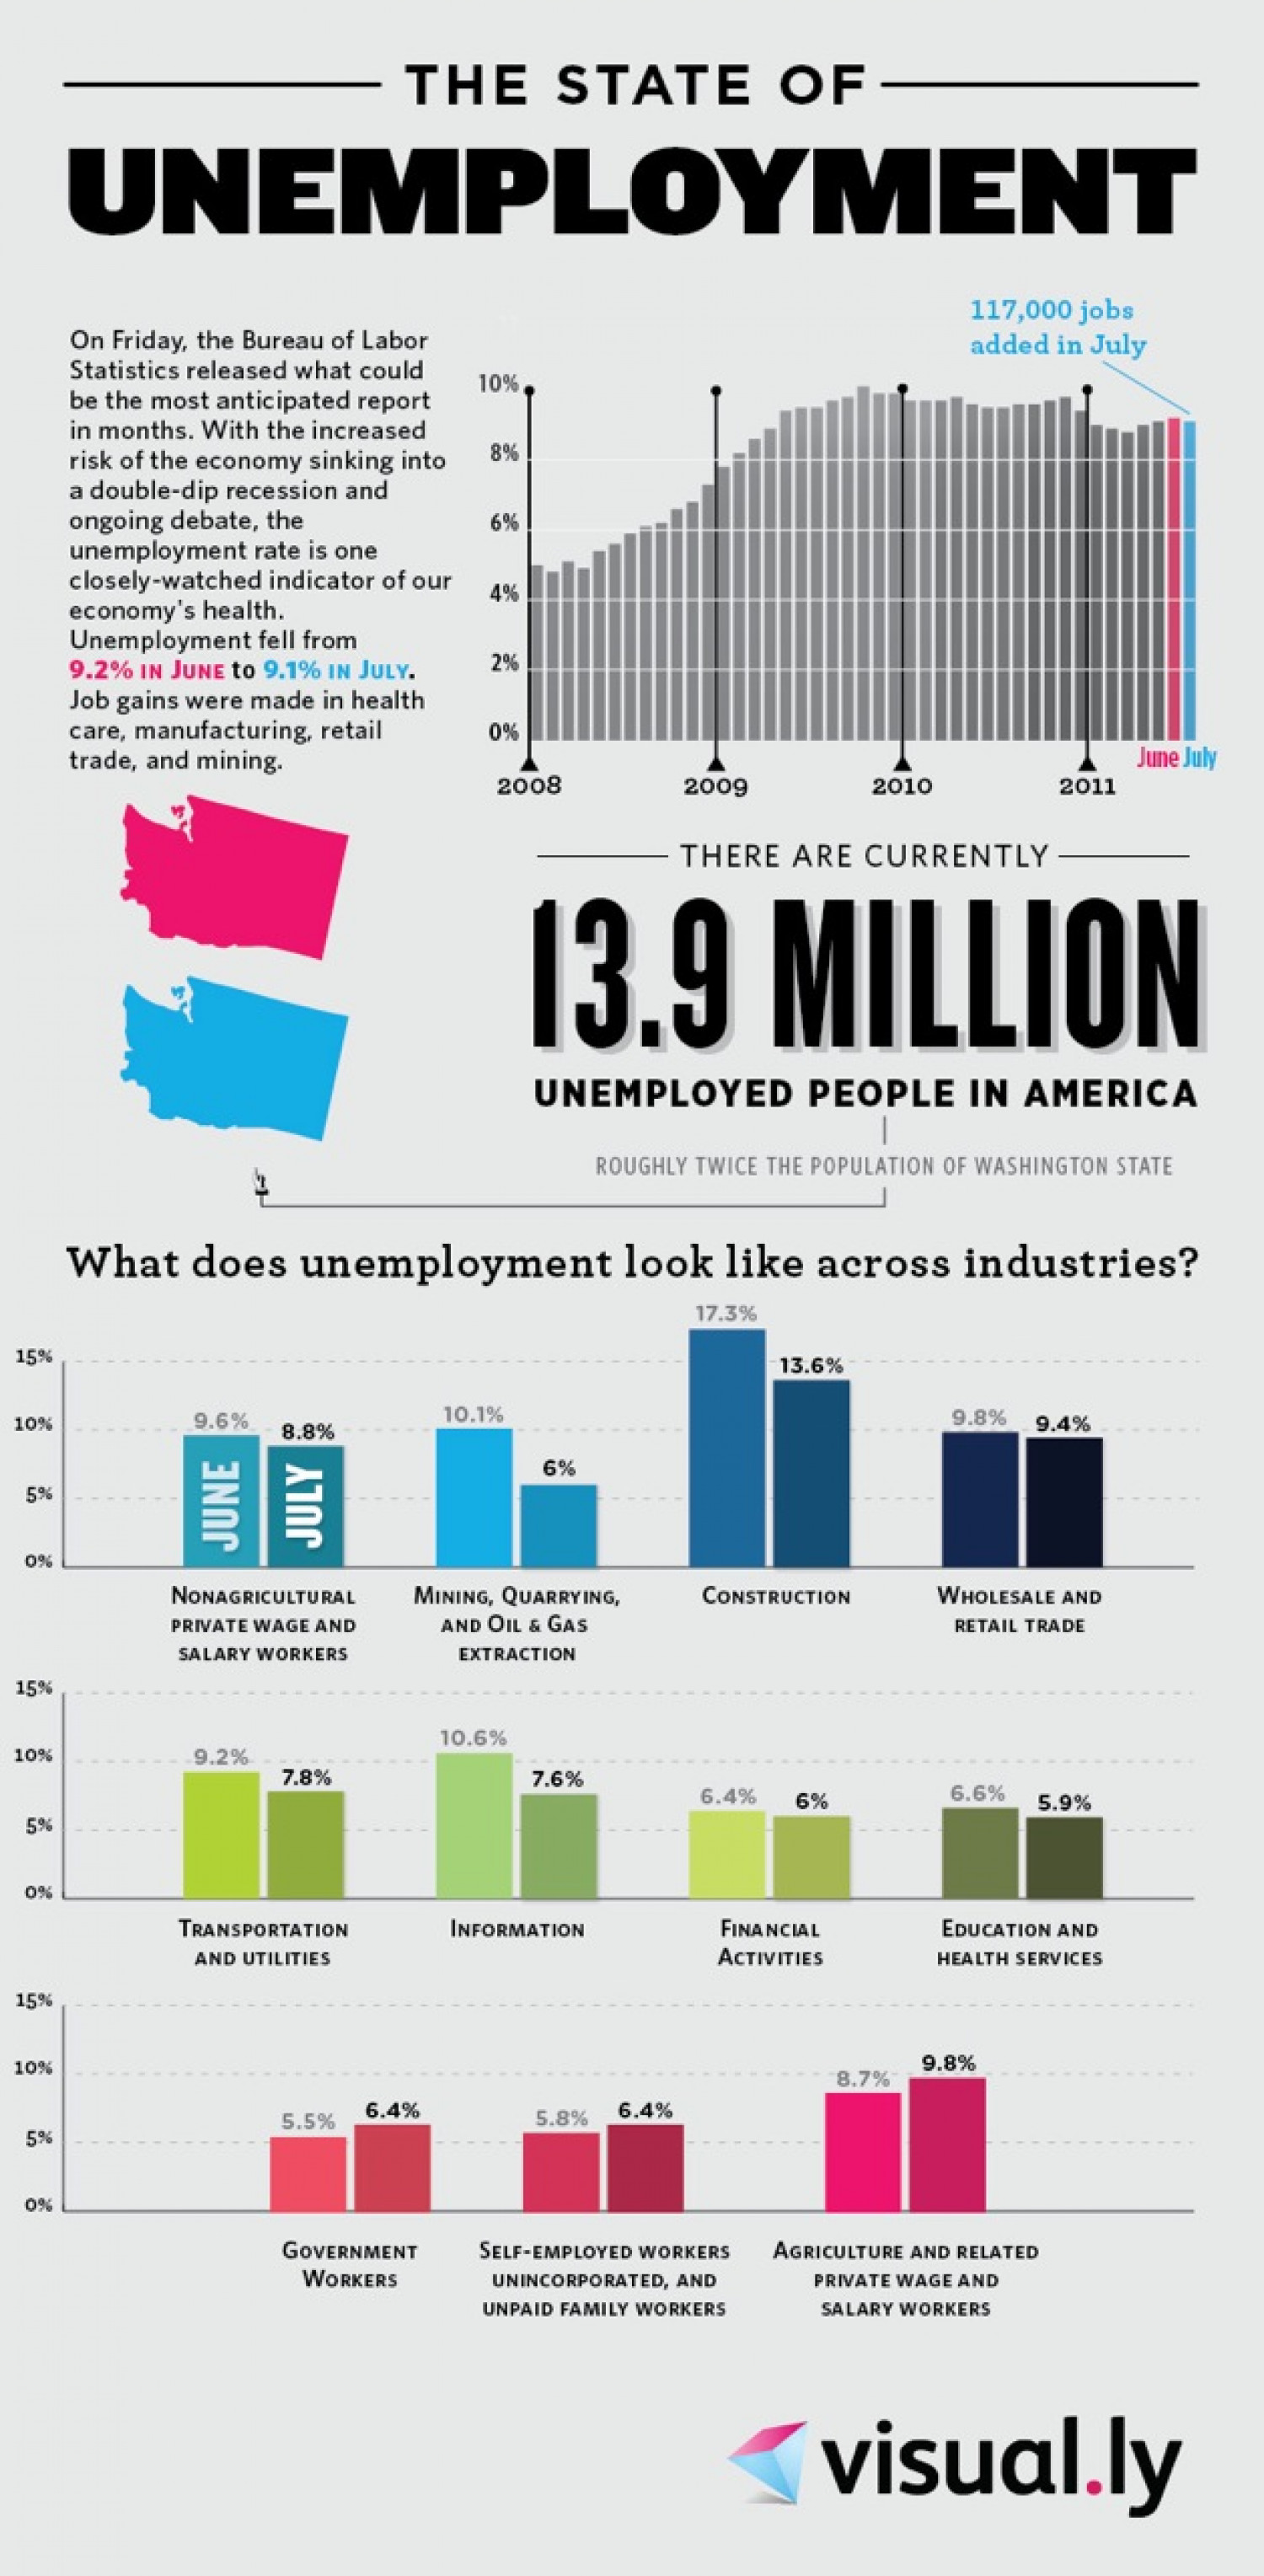 The State of Unemployment Infographic